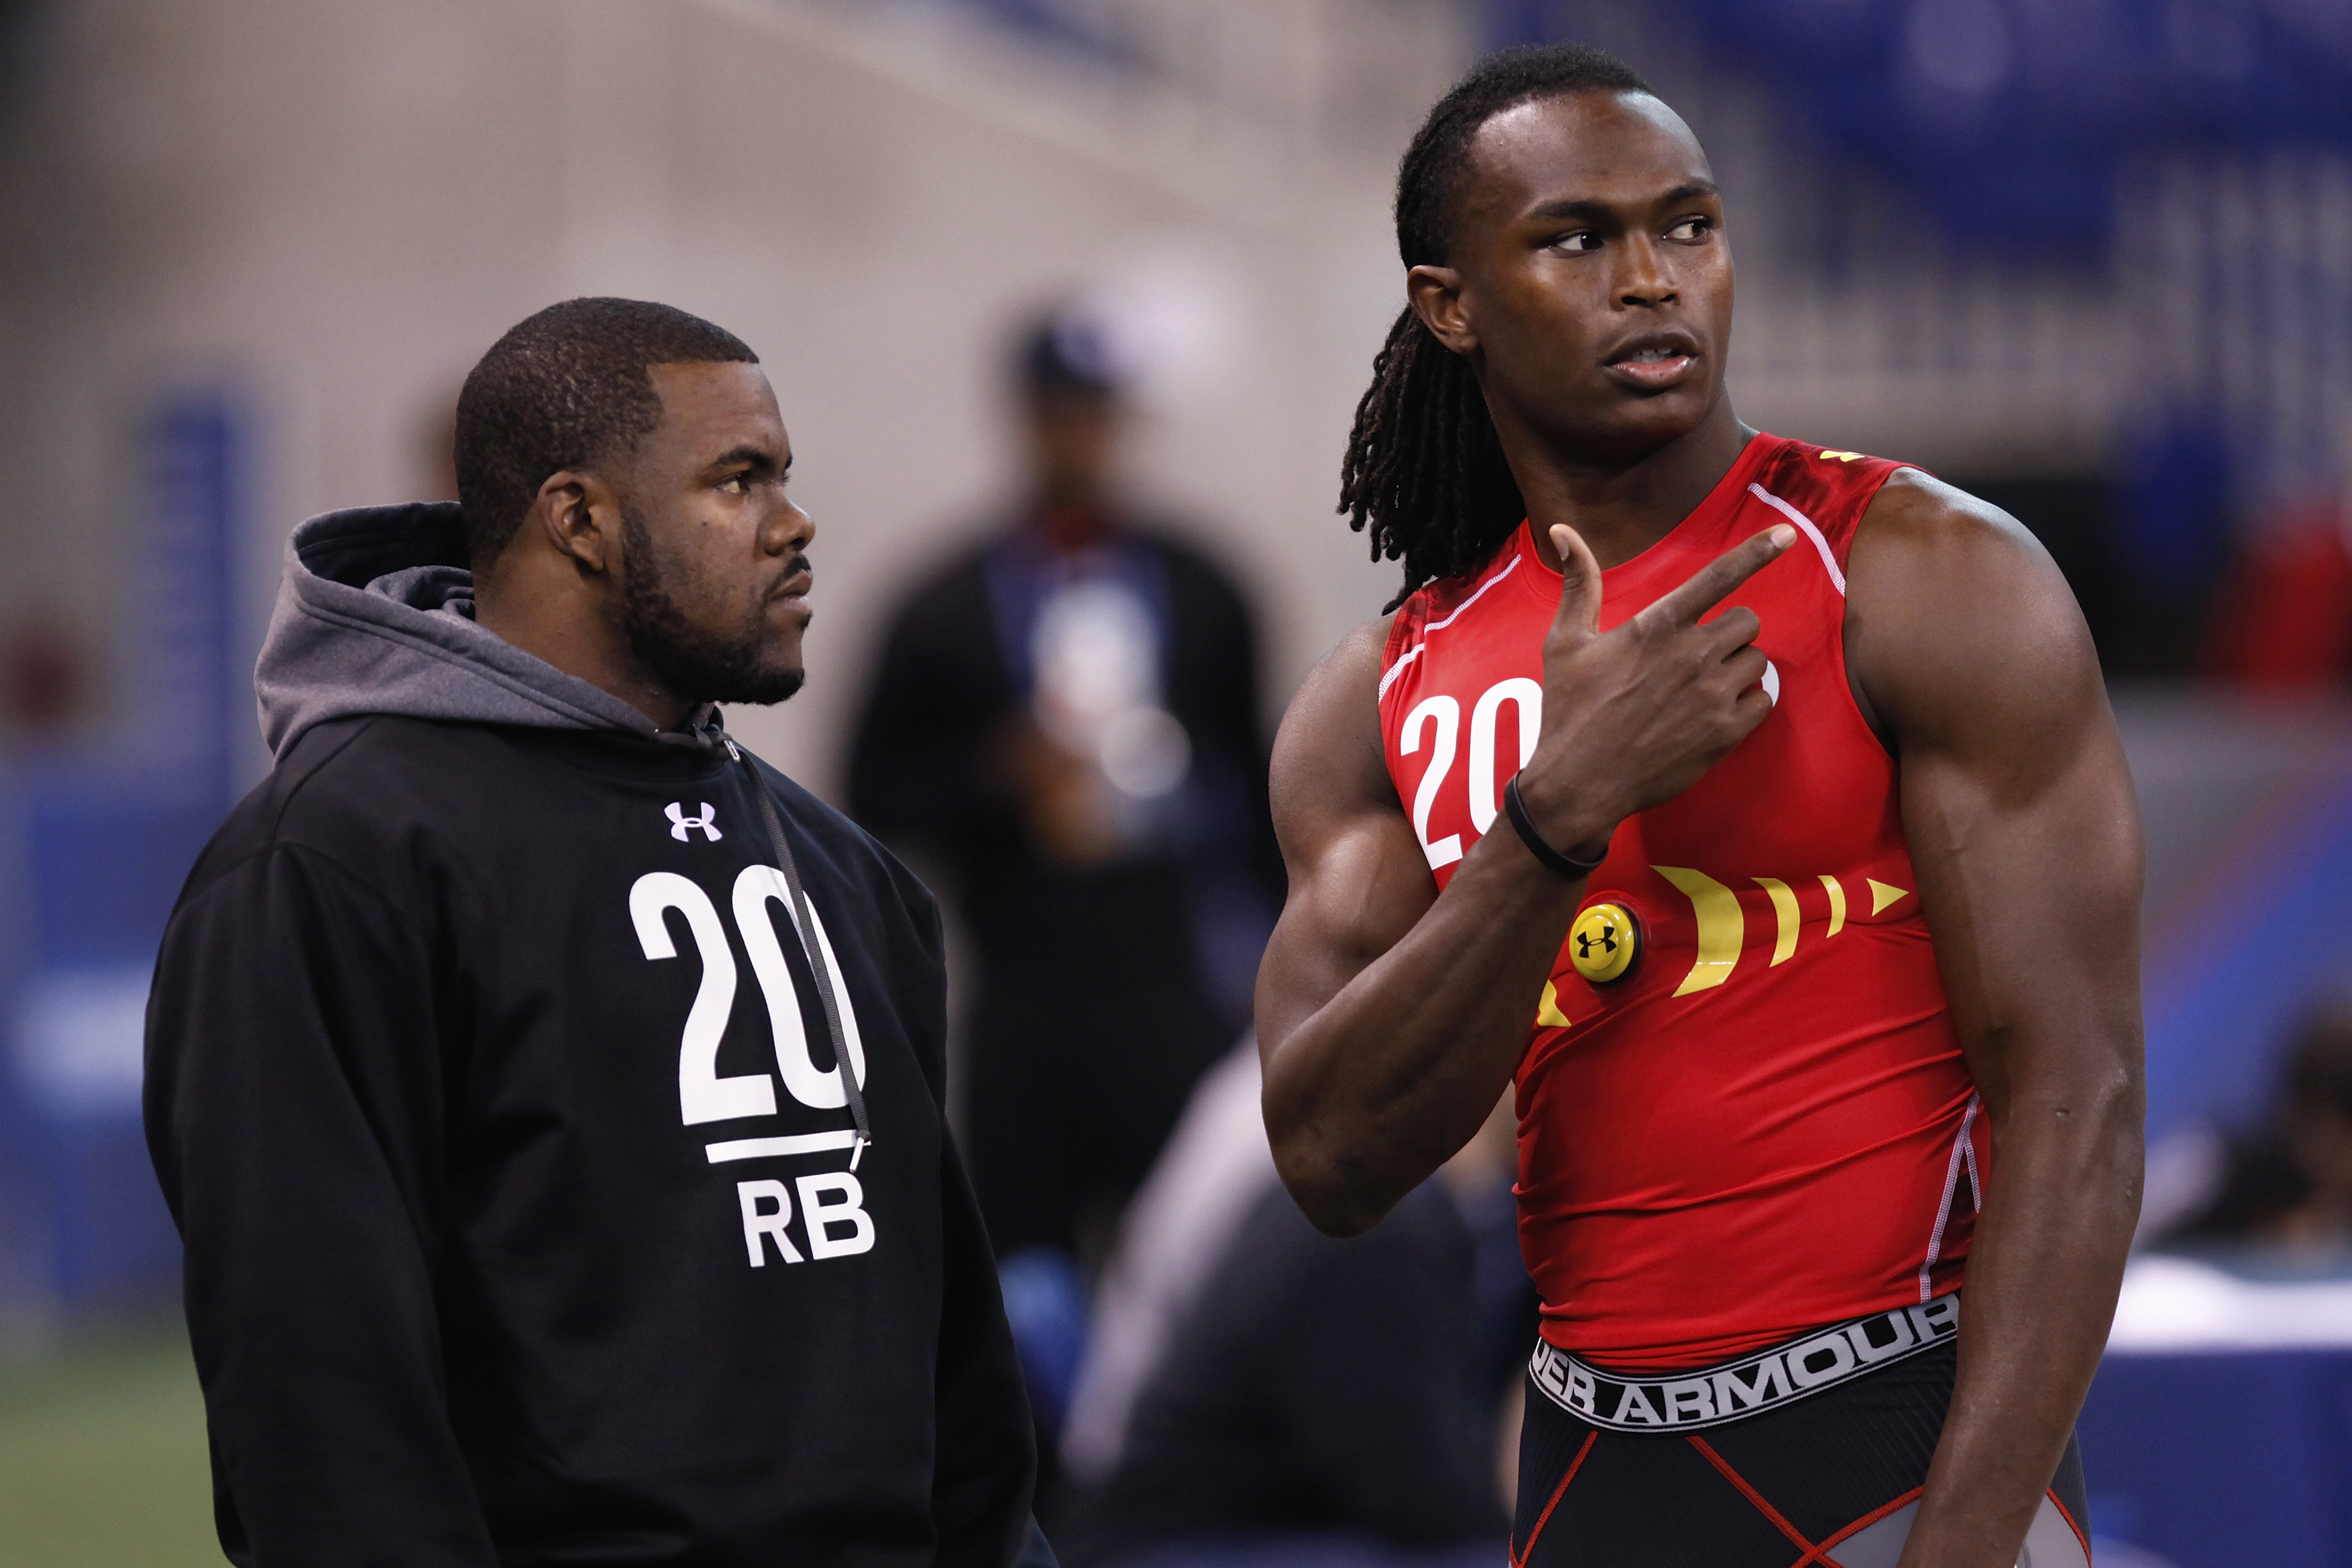 INDIANAPOLIS, IN - FEBRUARY 27: Former Alabama teammates Mark Ingram (L) and Julio Jones look on during the 2011 NFL Scouting Combine at Lucas Oil Stadium on February 27, 2011 in Indianapolis, Indiana. (Photo by Joe Robbins/Getty Images)